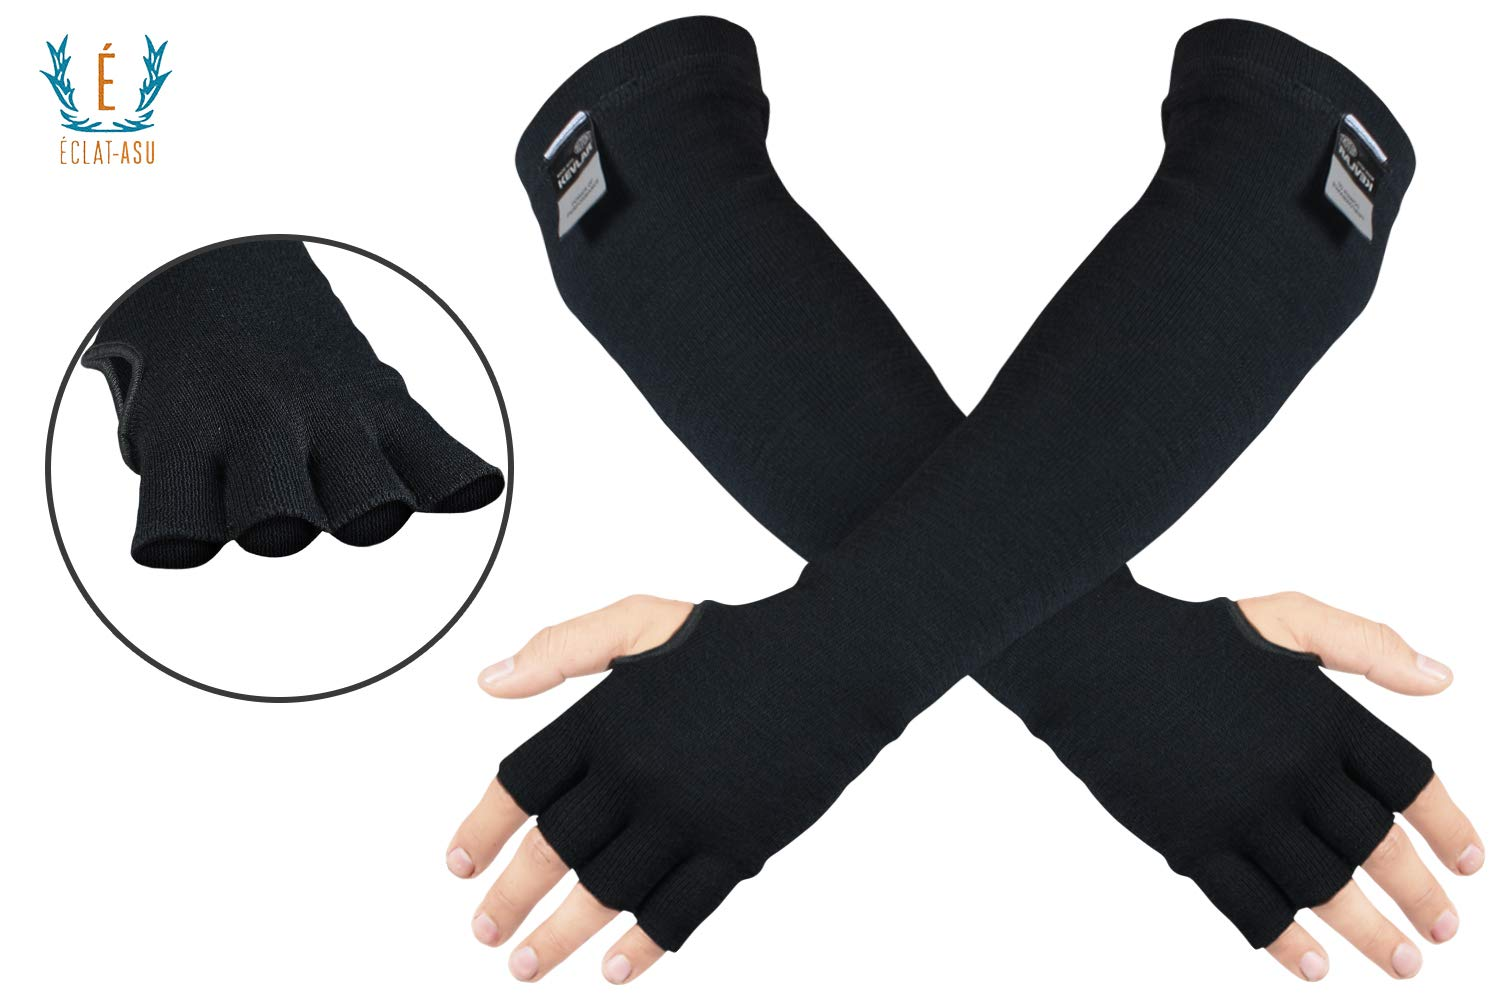 100% Kevlar Arm Sleeves- Cut, Scratch & Heat Resistant Arm Sleeve with Finger Opening & Thumb Holes- Arm Safety Sleeves- Long Arm Protectors- Flexible & Washable- 18 Inches, Black, 1 Pair by ECLAT-ASU